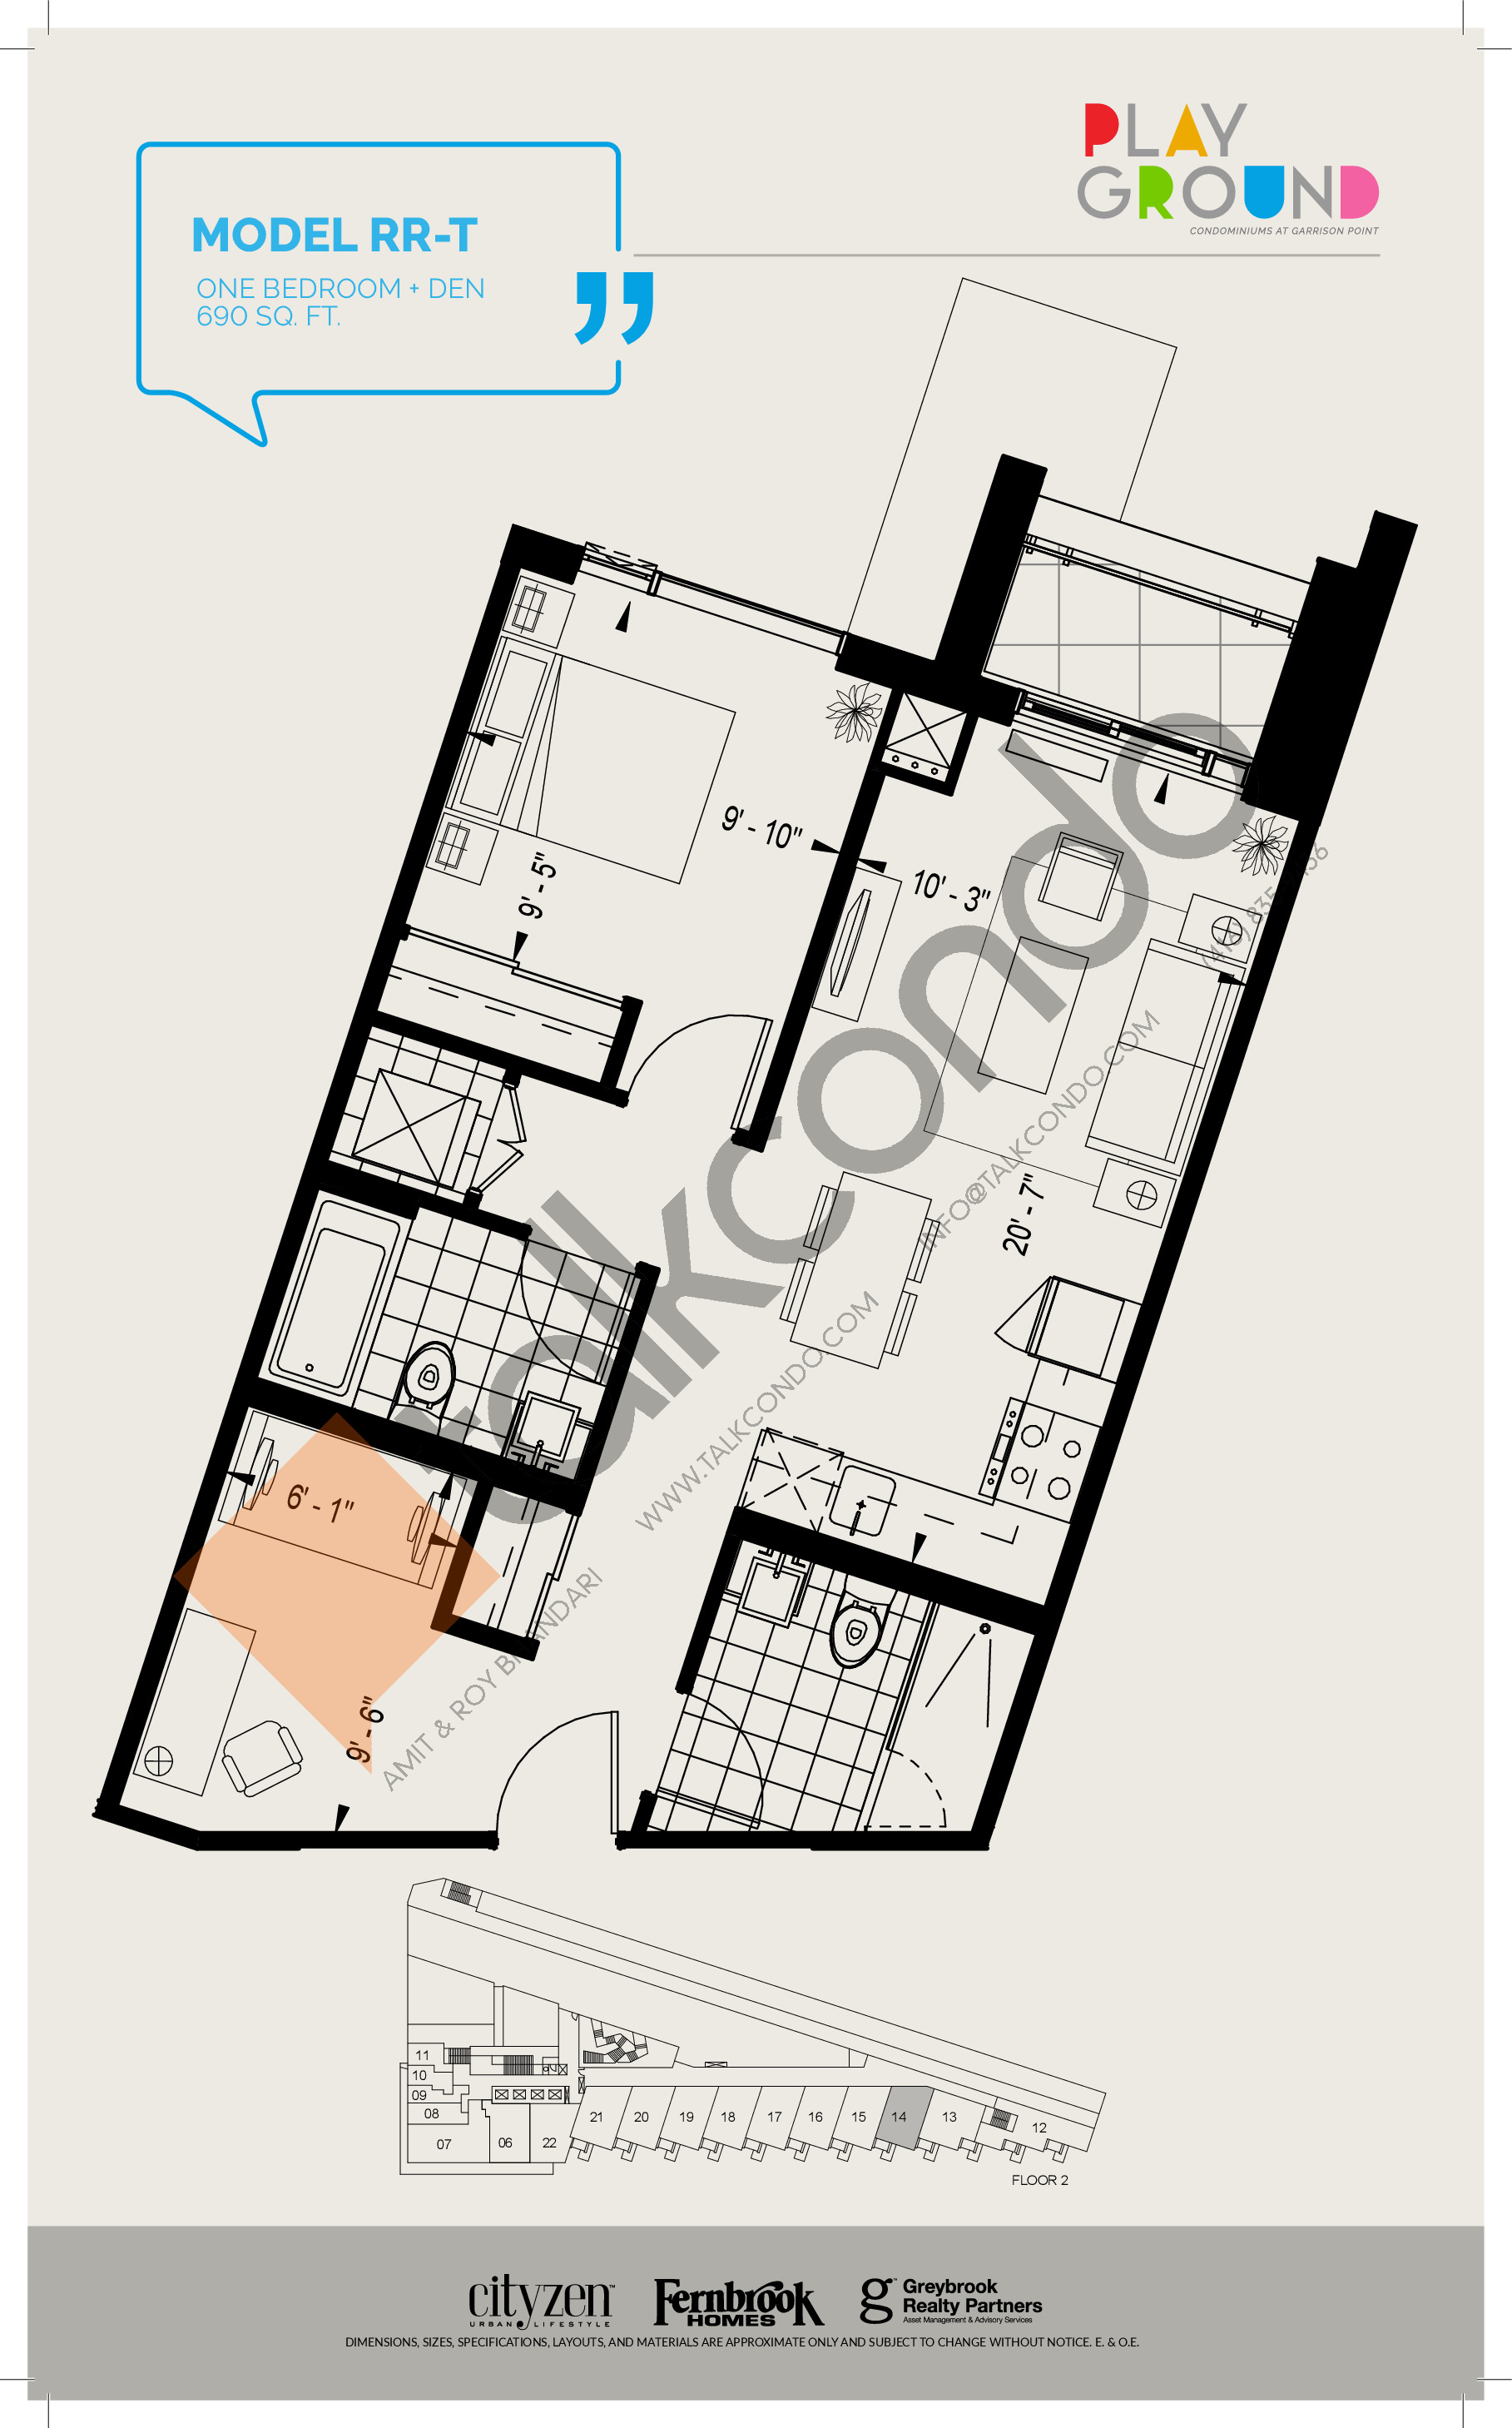 Model RR-T Floor Plan at Playground Condos at Garrison Point - 690 sq.ft